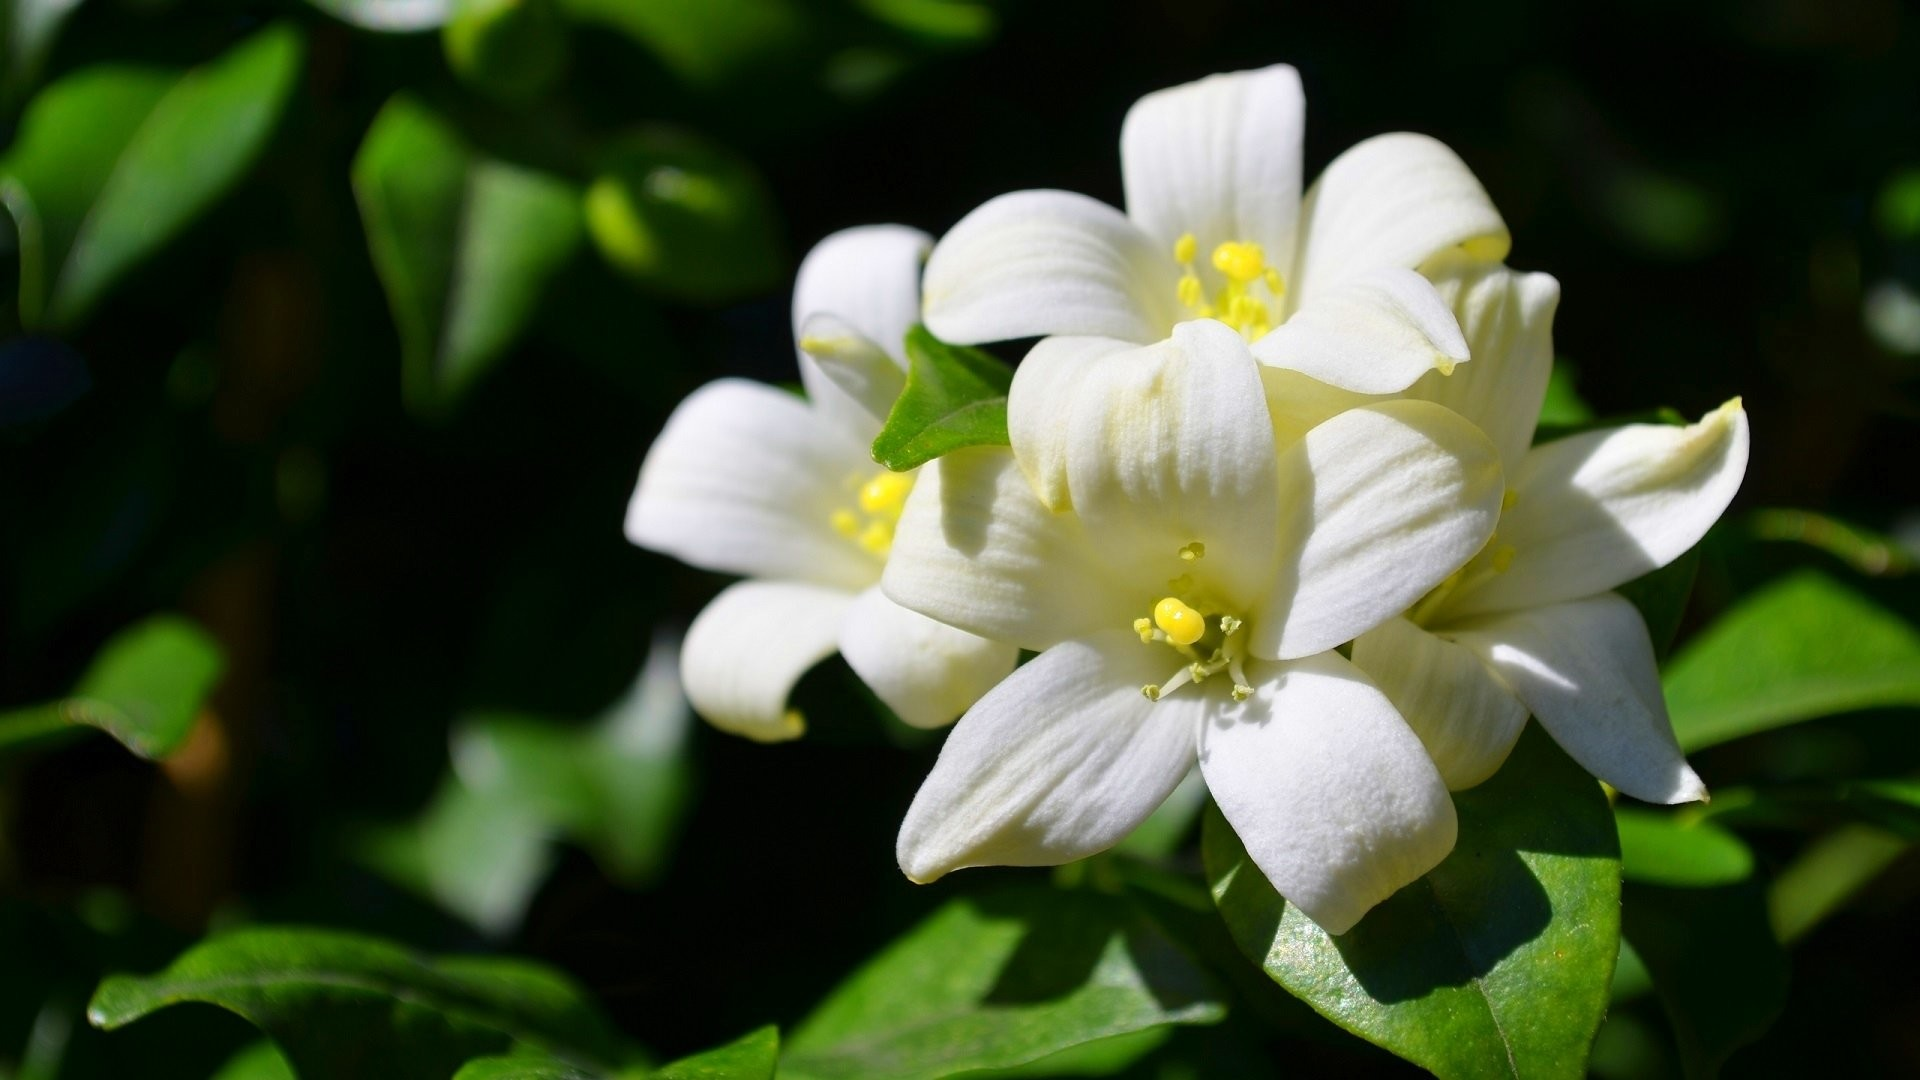 Res: 1920x1080, HD Wallpaper | Background Image ID:553611.  Earth Jasmine